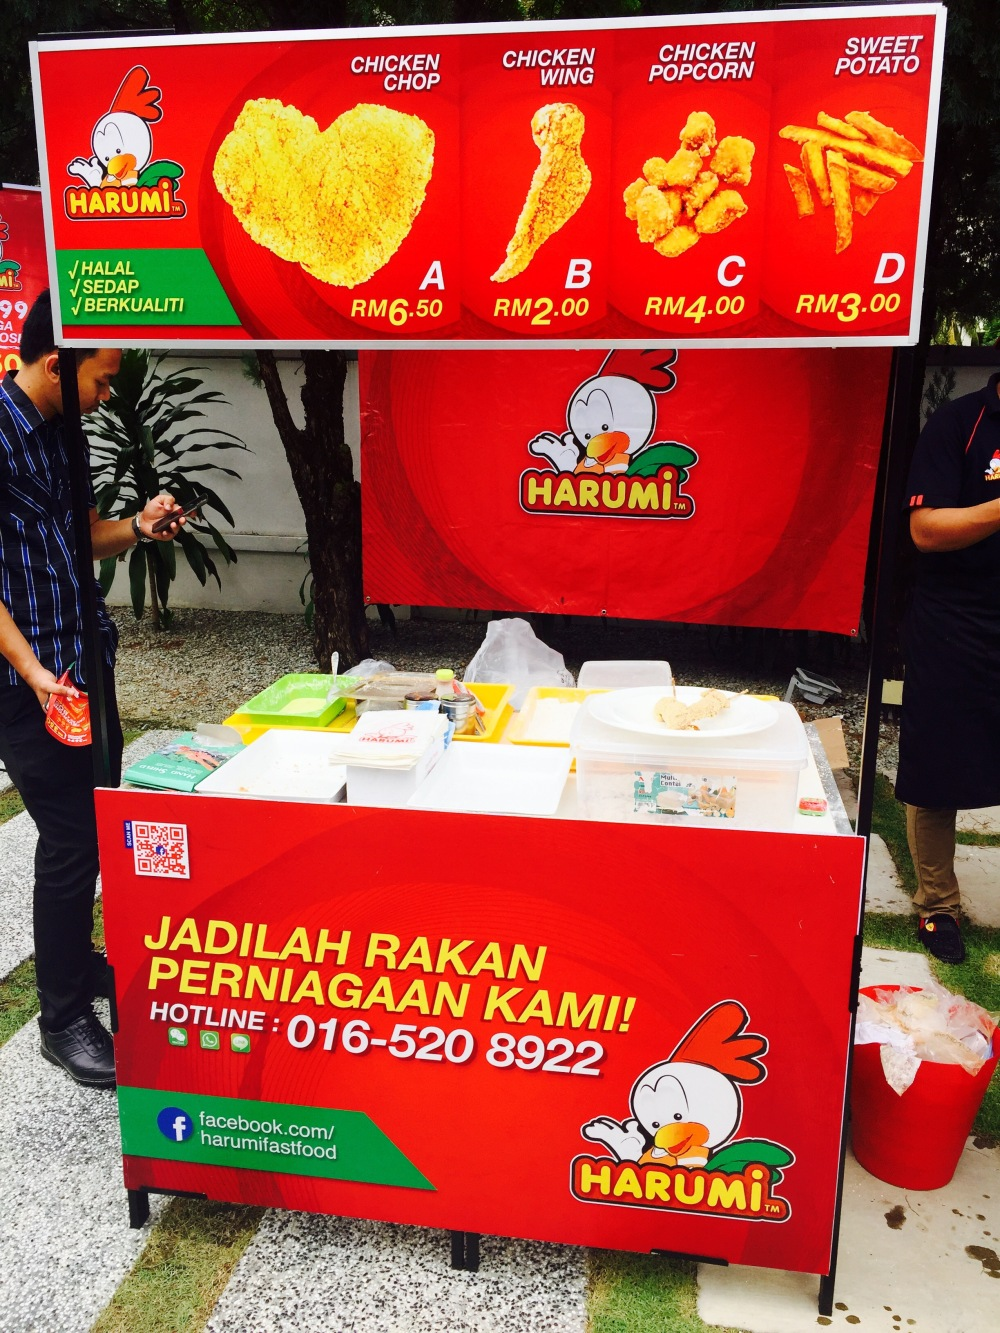 HARUMi Fried Chicken Franchise Business Opportunity